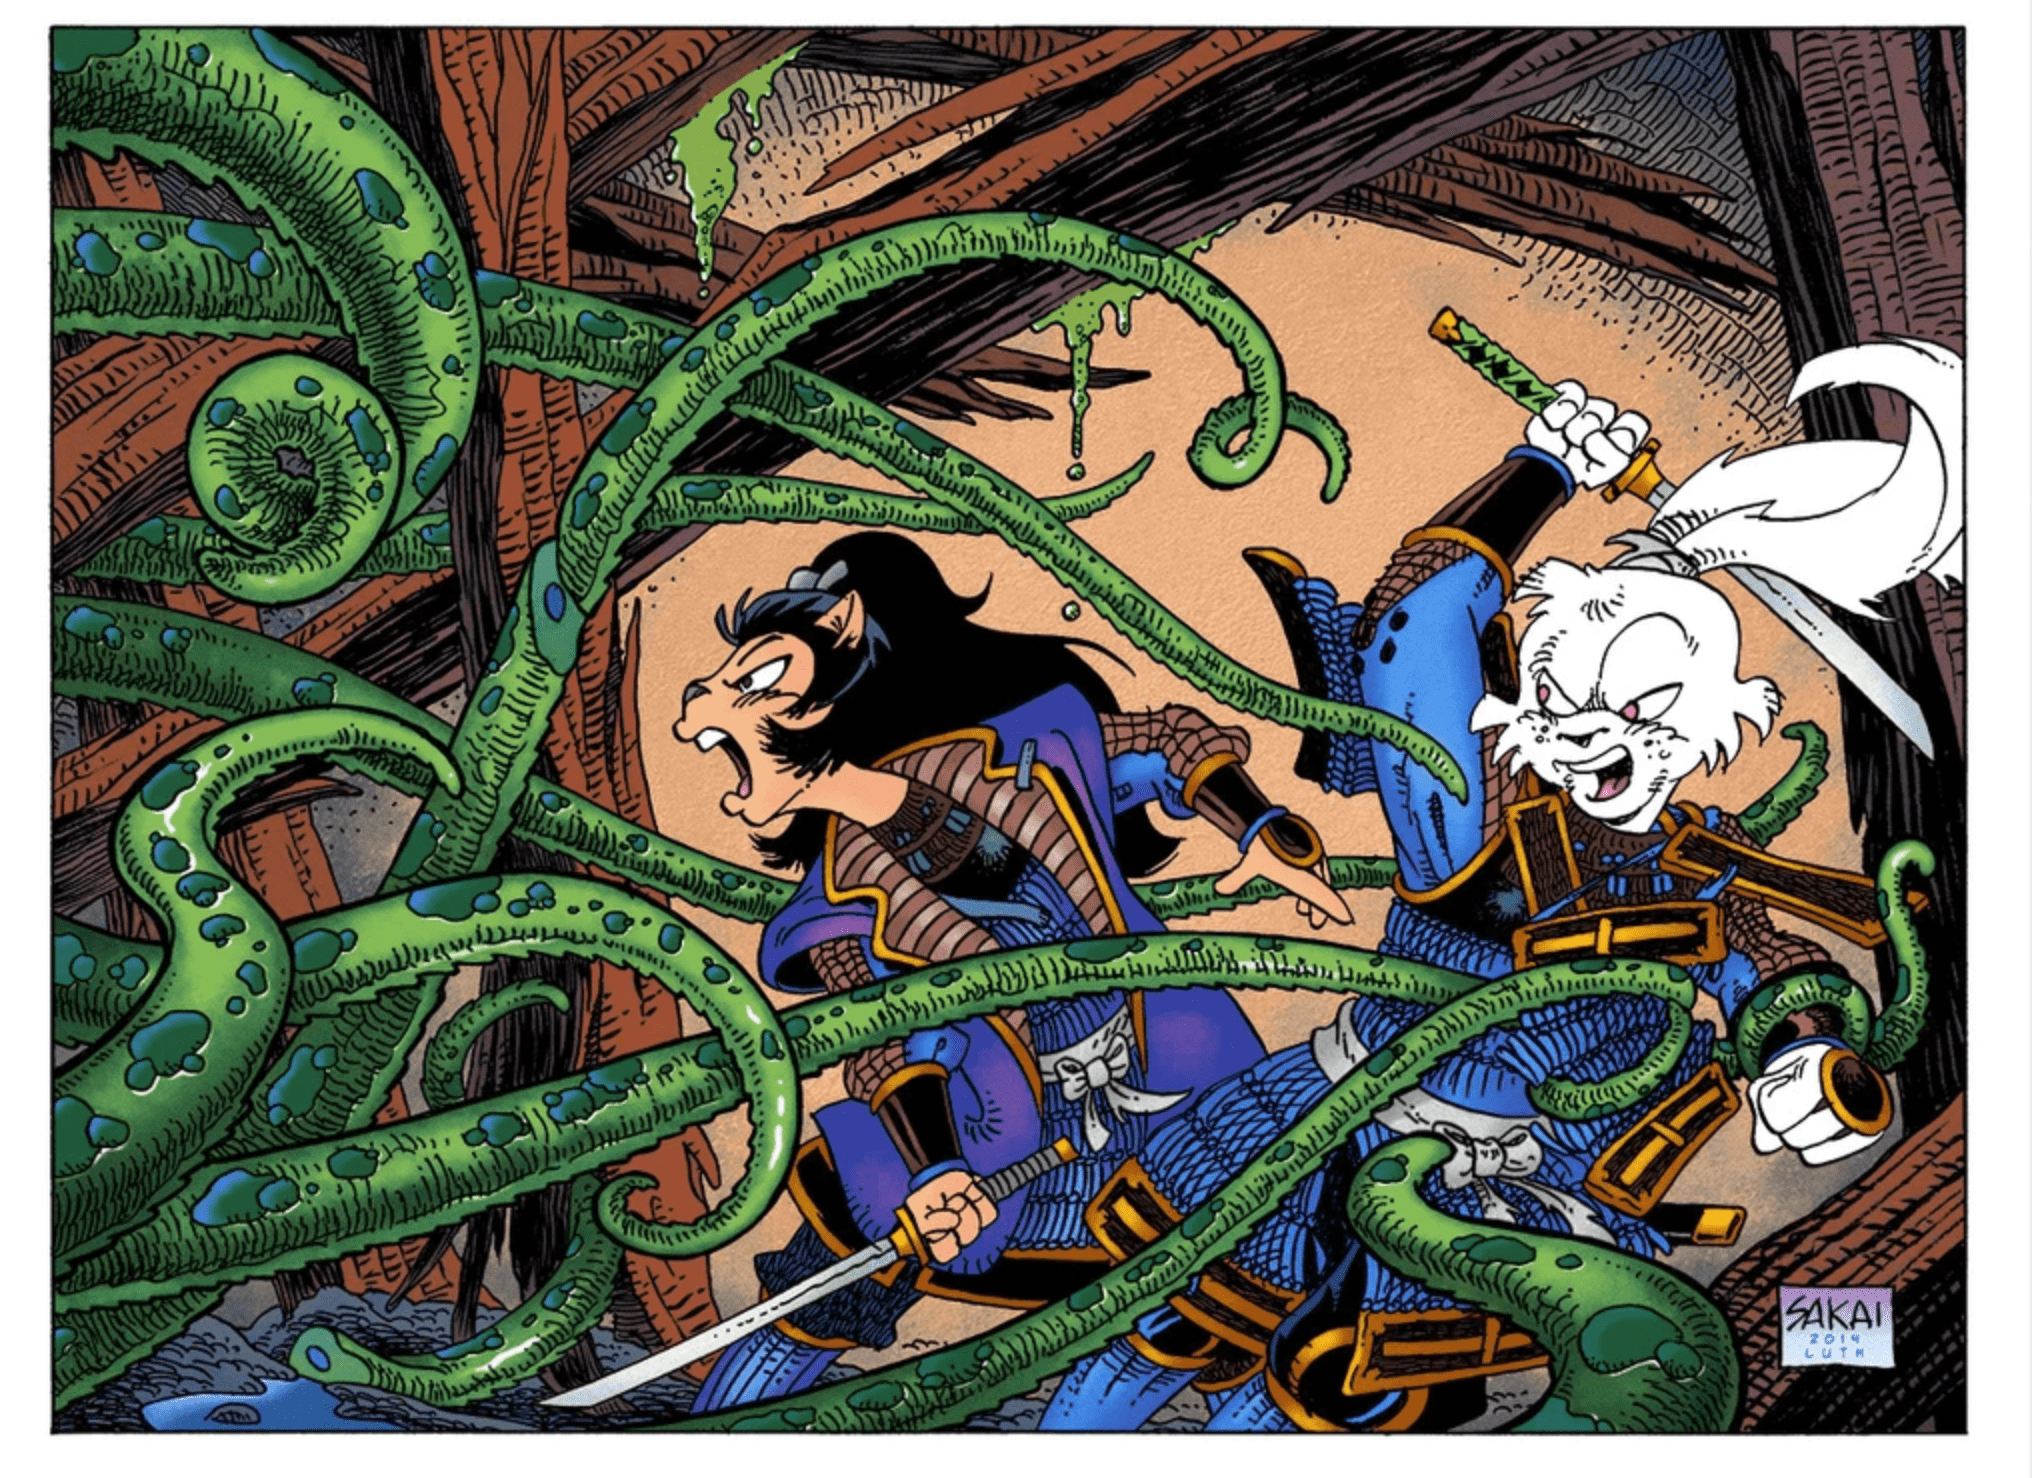 Samurai Rabbit: The Usagi Chronicles series starring Usagi Yojimbo is on the way from Netflix.